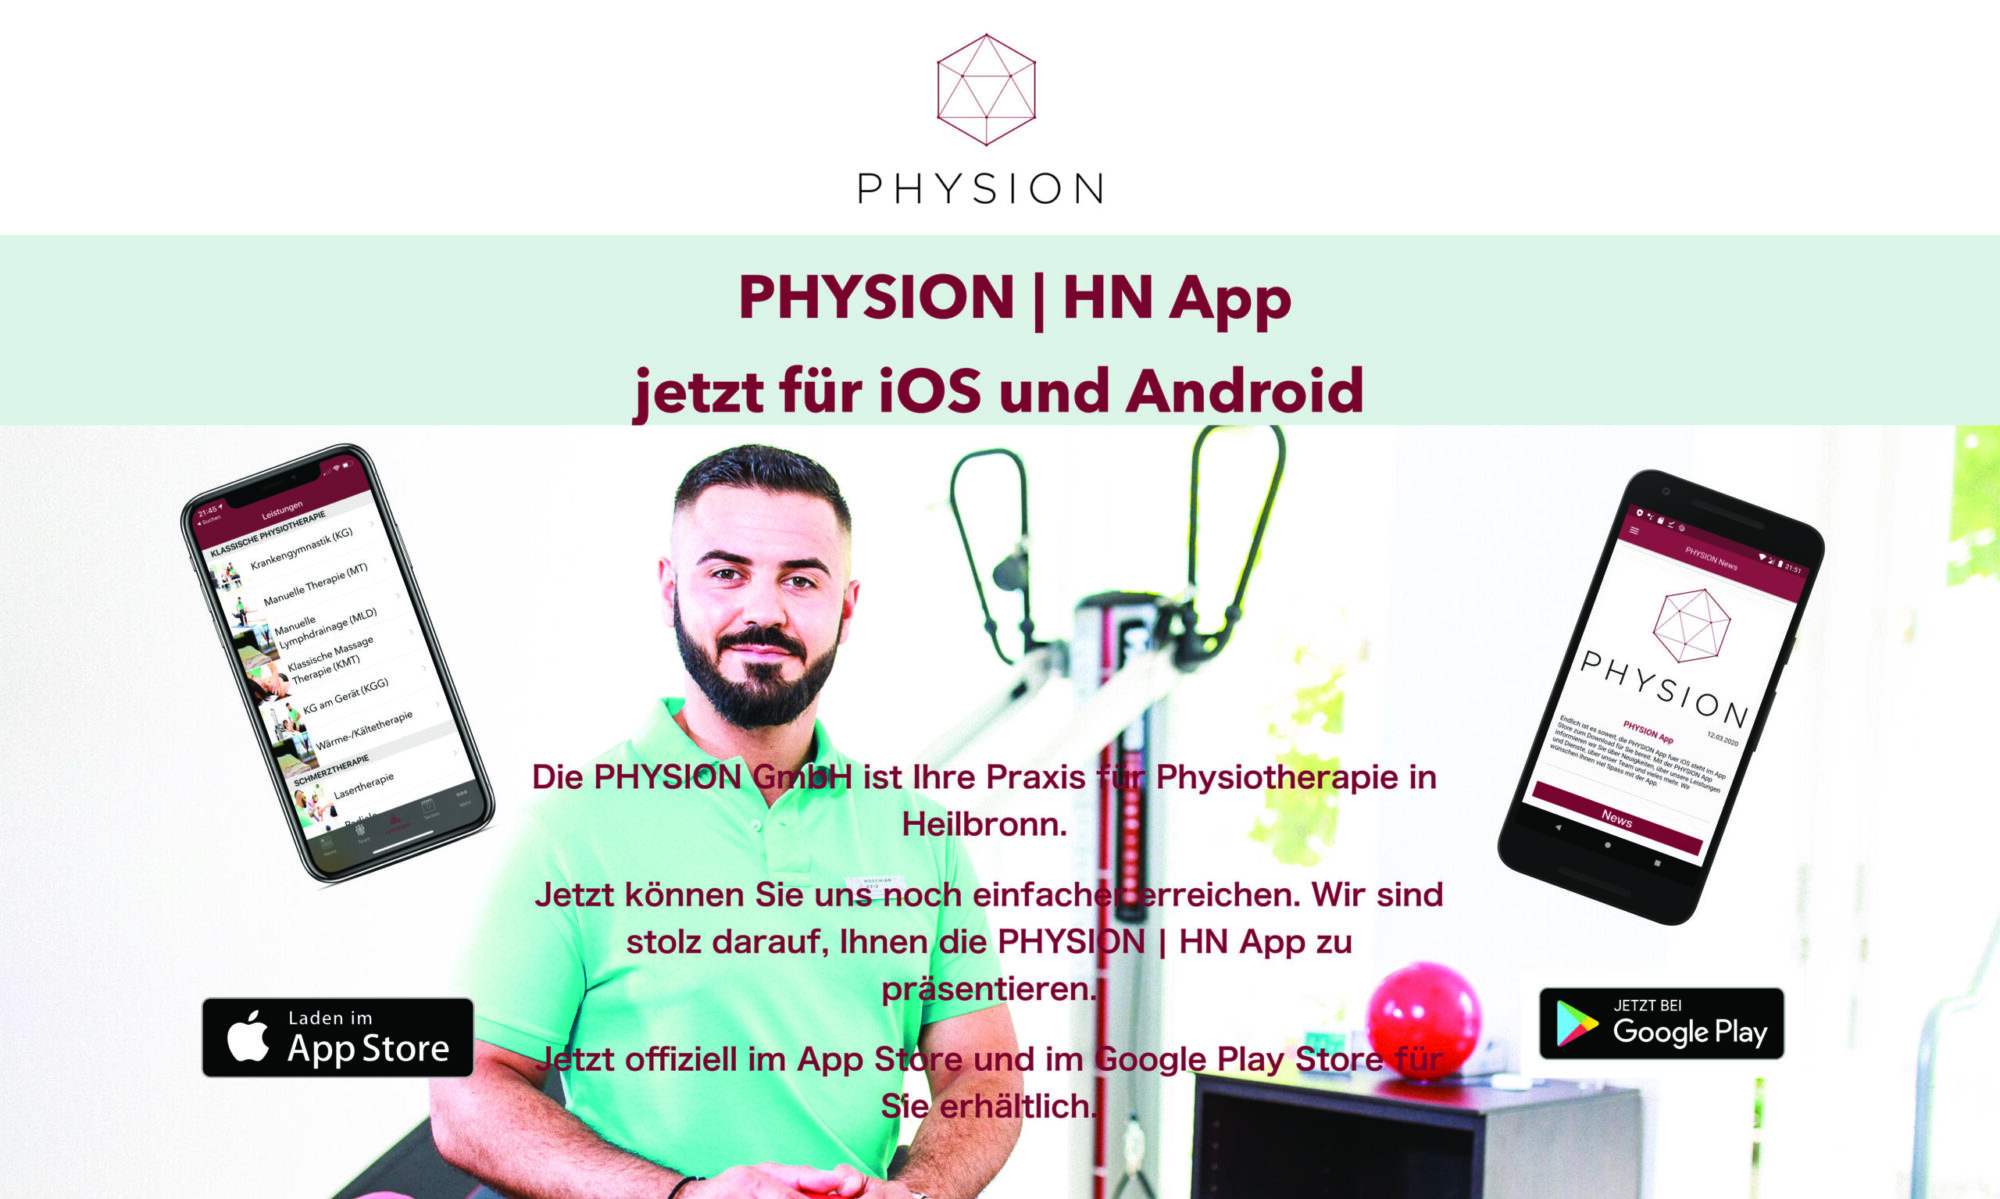 PHYSION | HN App